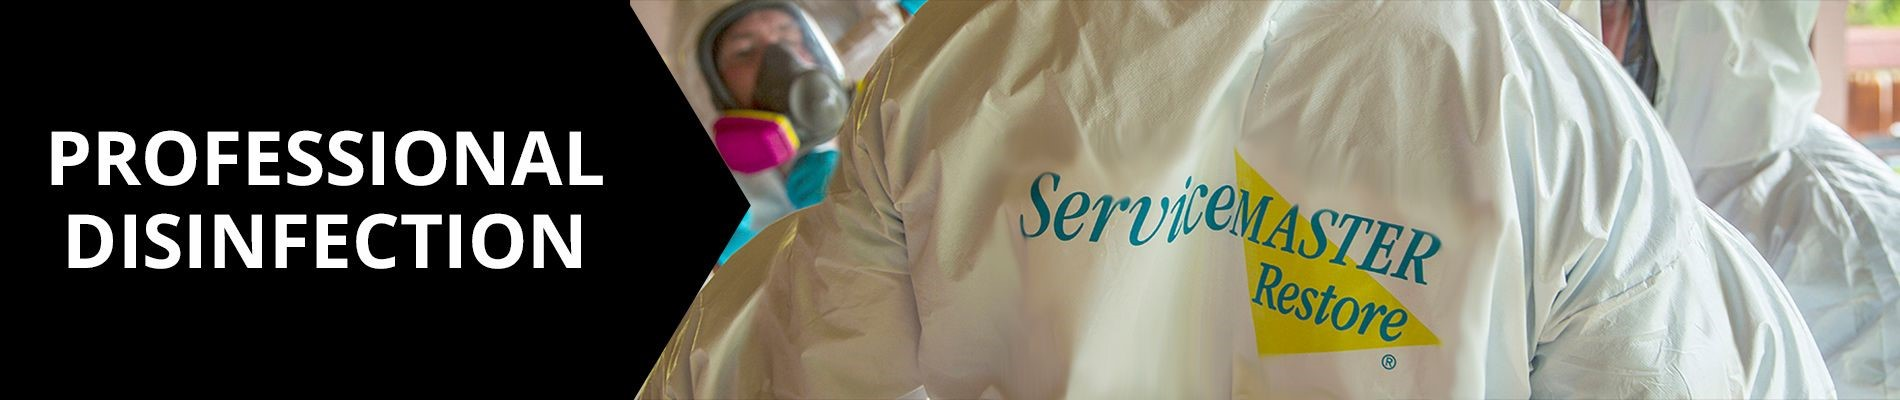 ServiceMaster disinfection banner